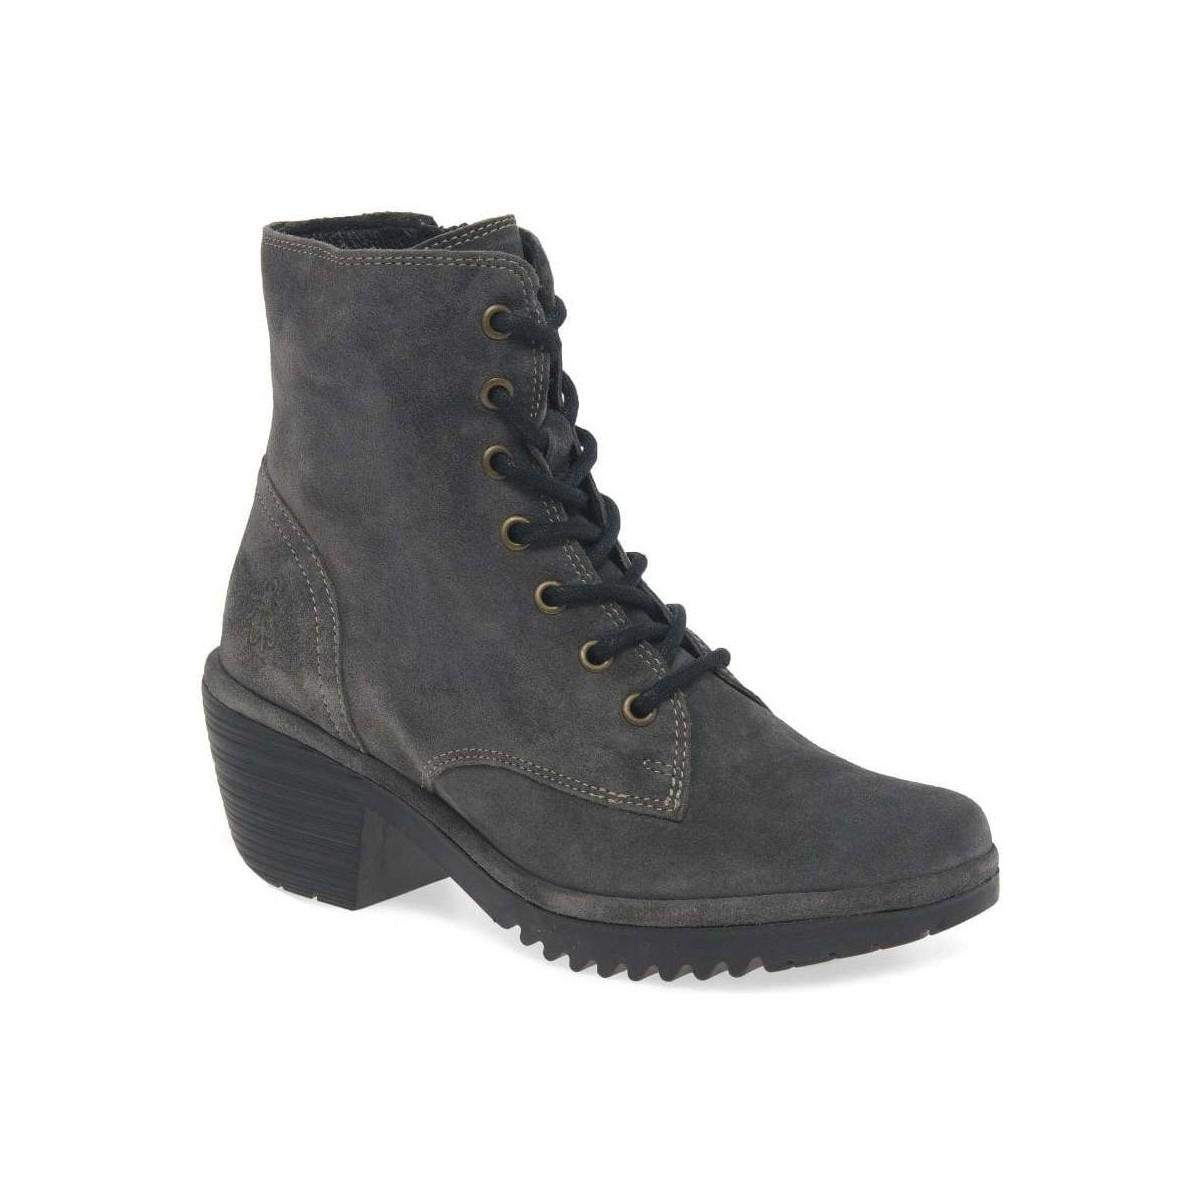 7699b8068e9f3 Fly London Woke Womens Lace Up Suede Military Ankle Boots in Gray - Lyst